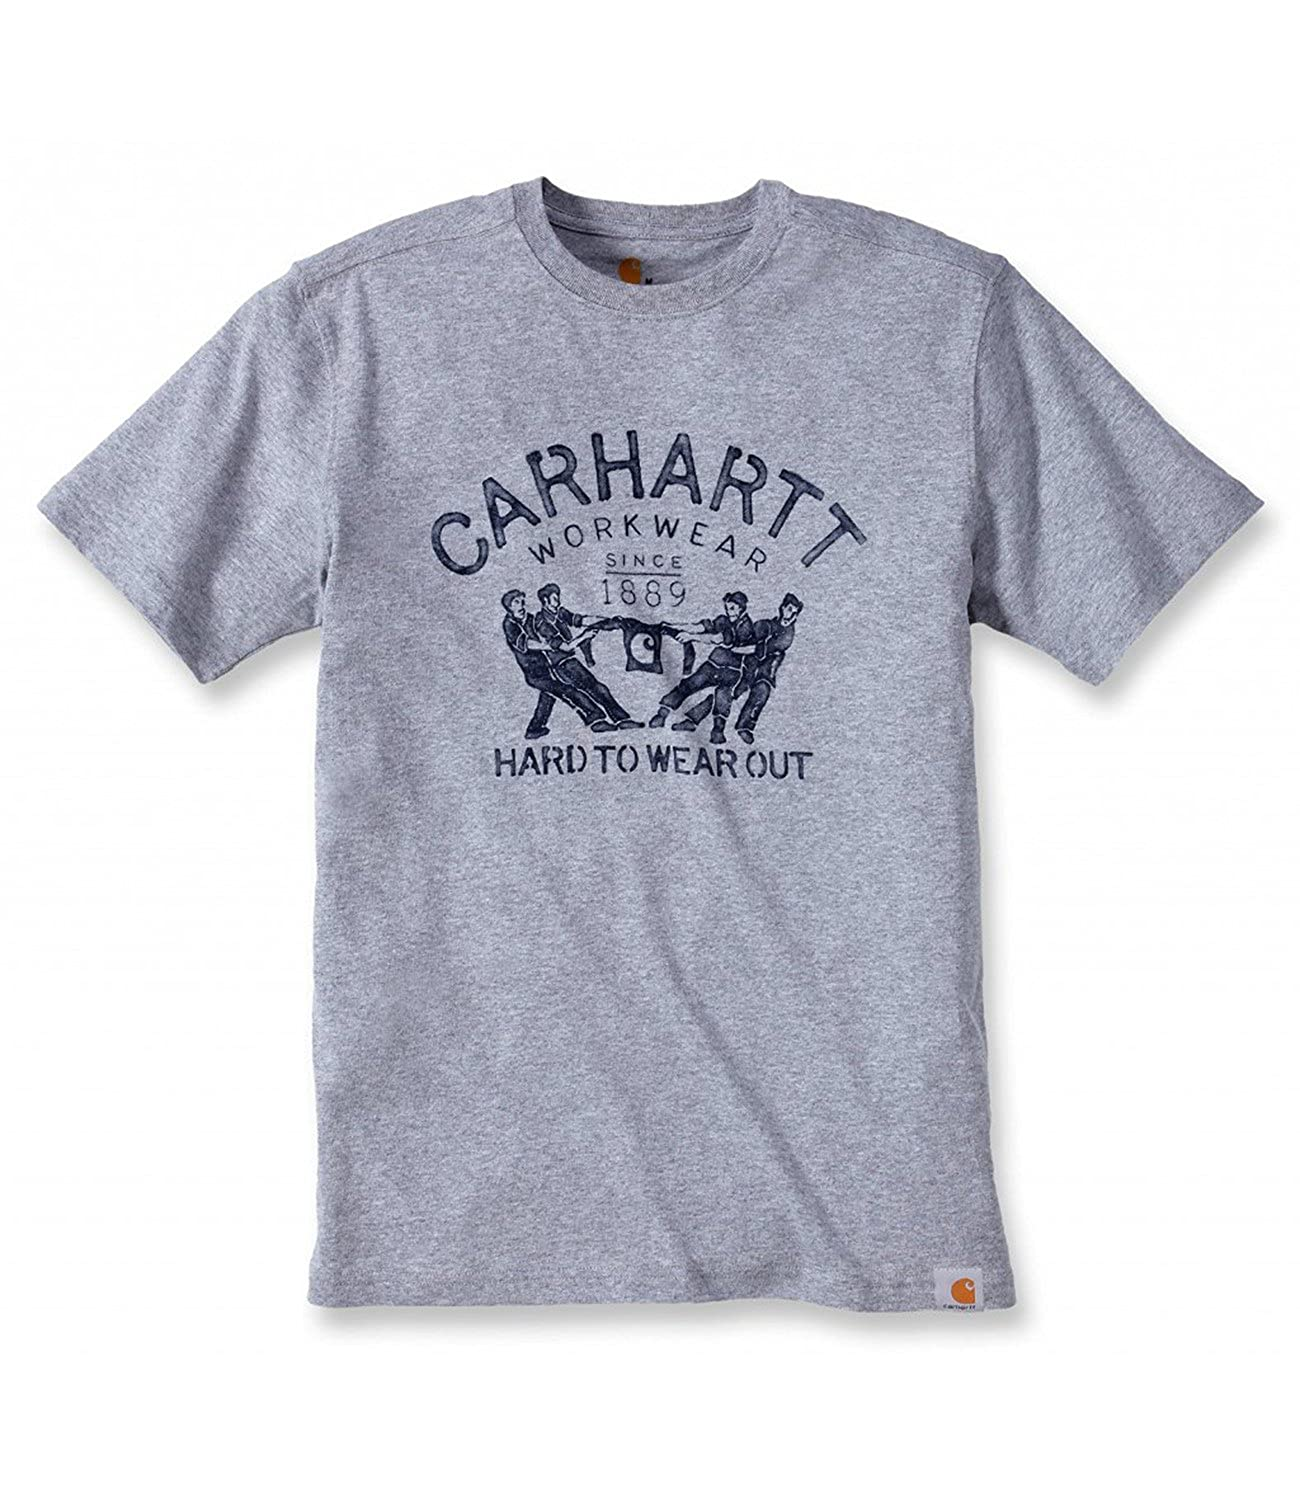 Carhartt T-Shirt Maddock Graphic Hard To Wear Out 102097